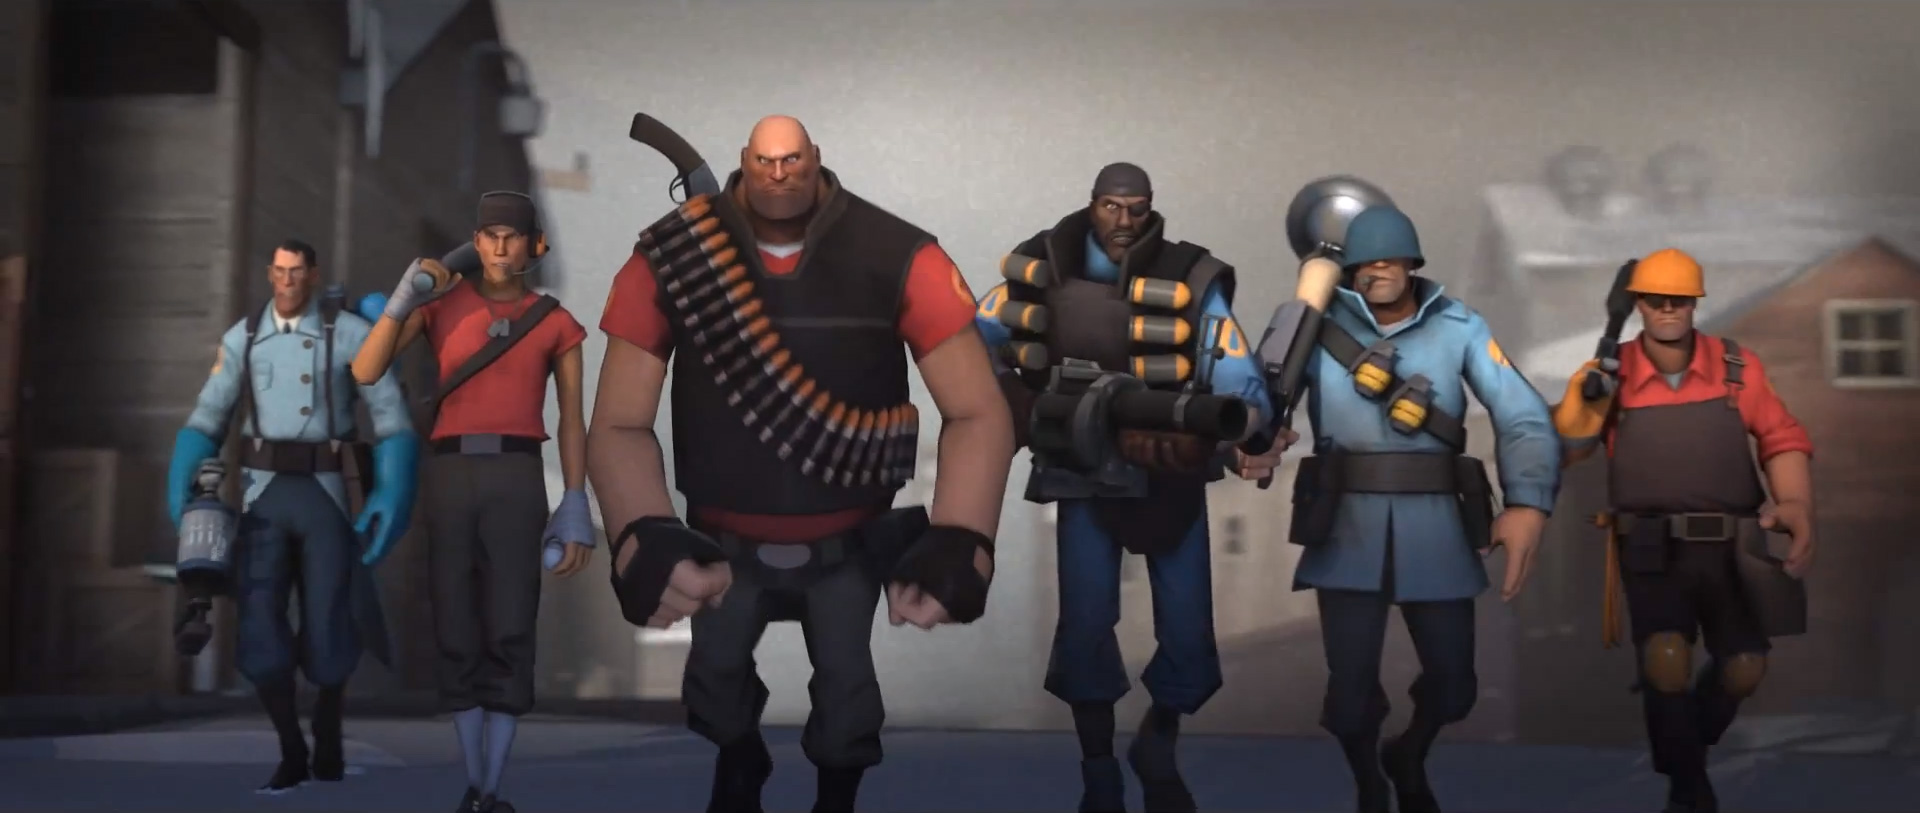 team fortress 2 mann vs machine